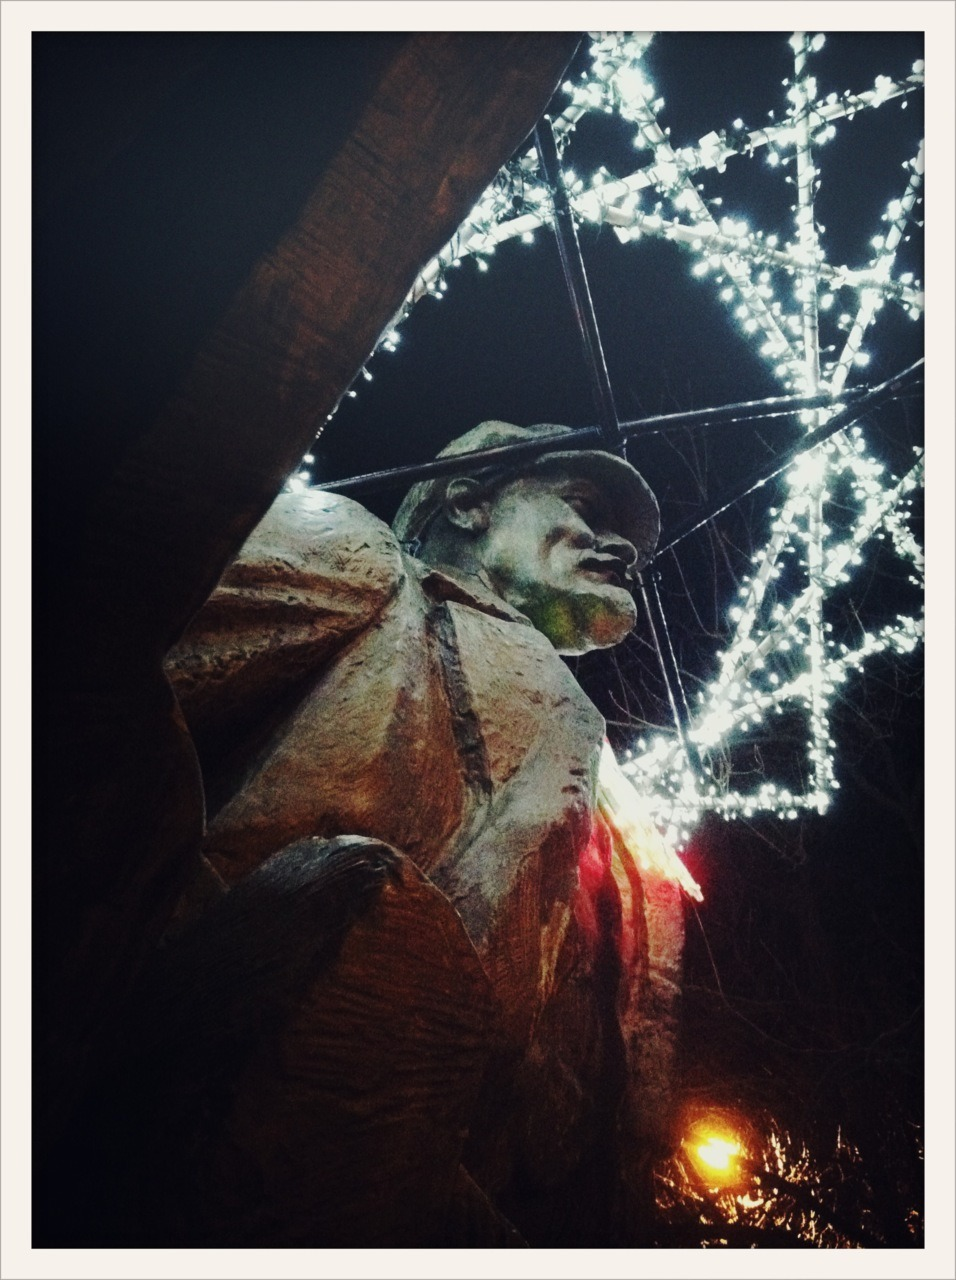 014/365 - 12.25.2011 - 'Fremont Lenin In Winter' Photo: Zachary Brown - 2011 - iPhone 4 w/ Cross Process   This work is licensed under a Creative Commons Attribution-NonCommercial-NoDerivs 3.0 Unported License.